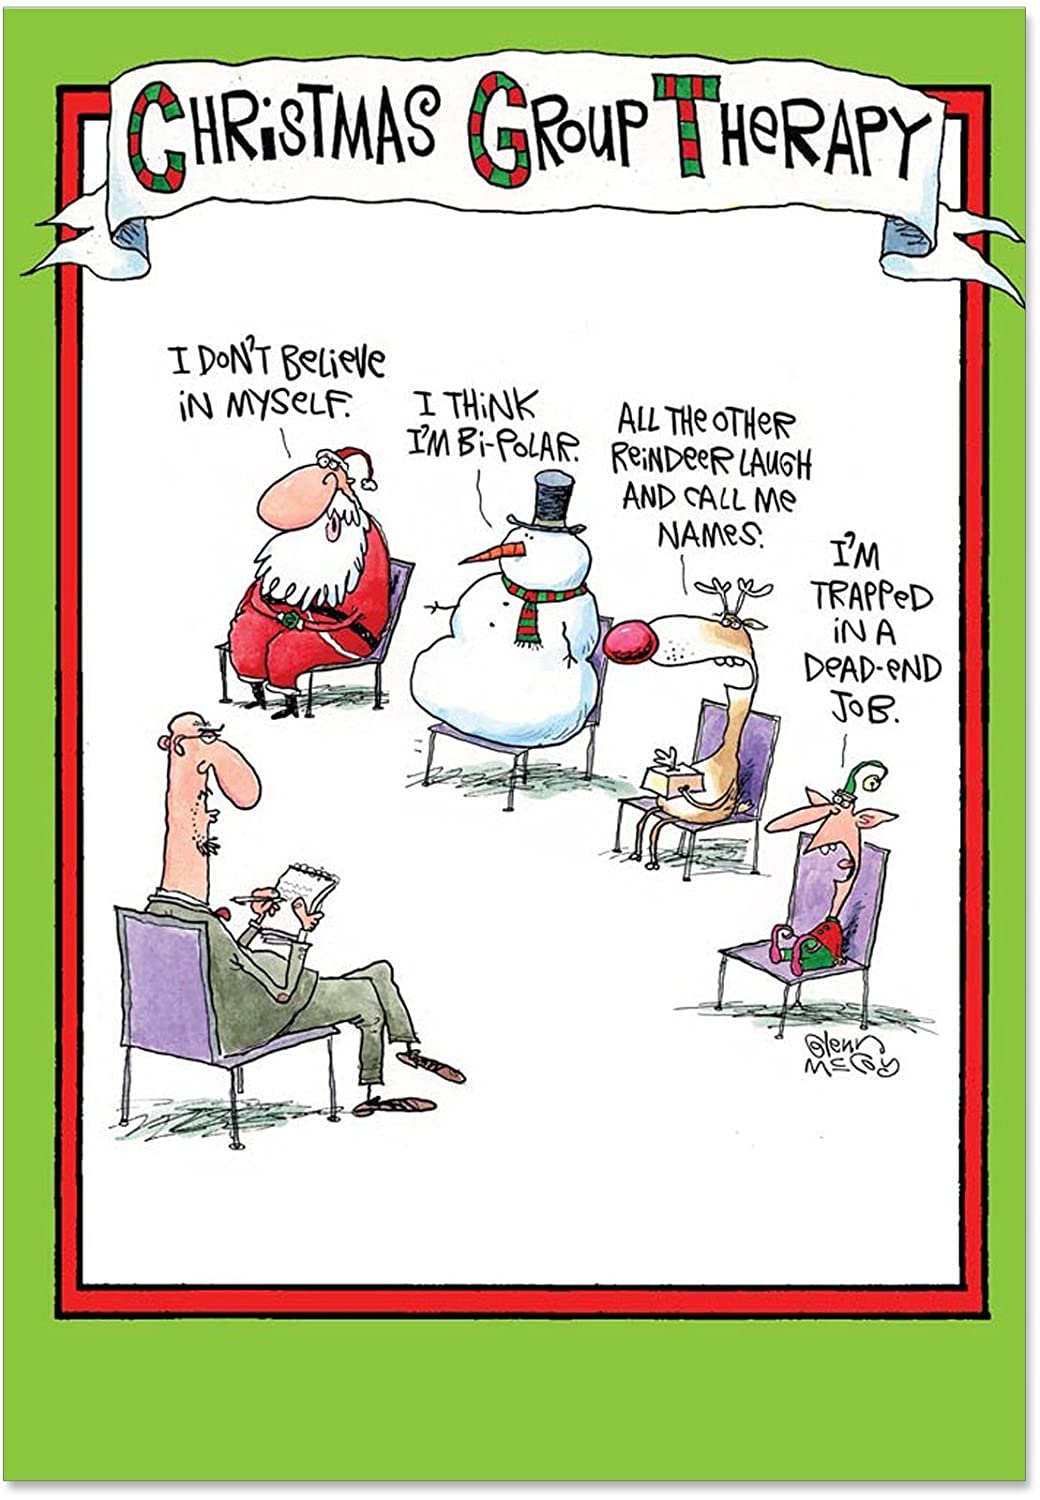 Amazon 5799 group therapy funny merry christmas greeting amazon 5799 group therapy funny merry christmas greeting card with 5 x 7 envelope by nobleworks merry christmas cards office products kristyandbryce Image collections